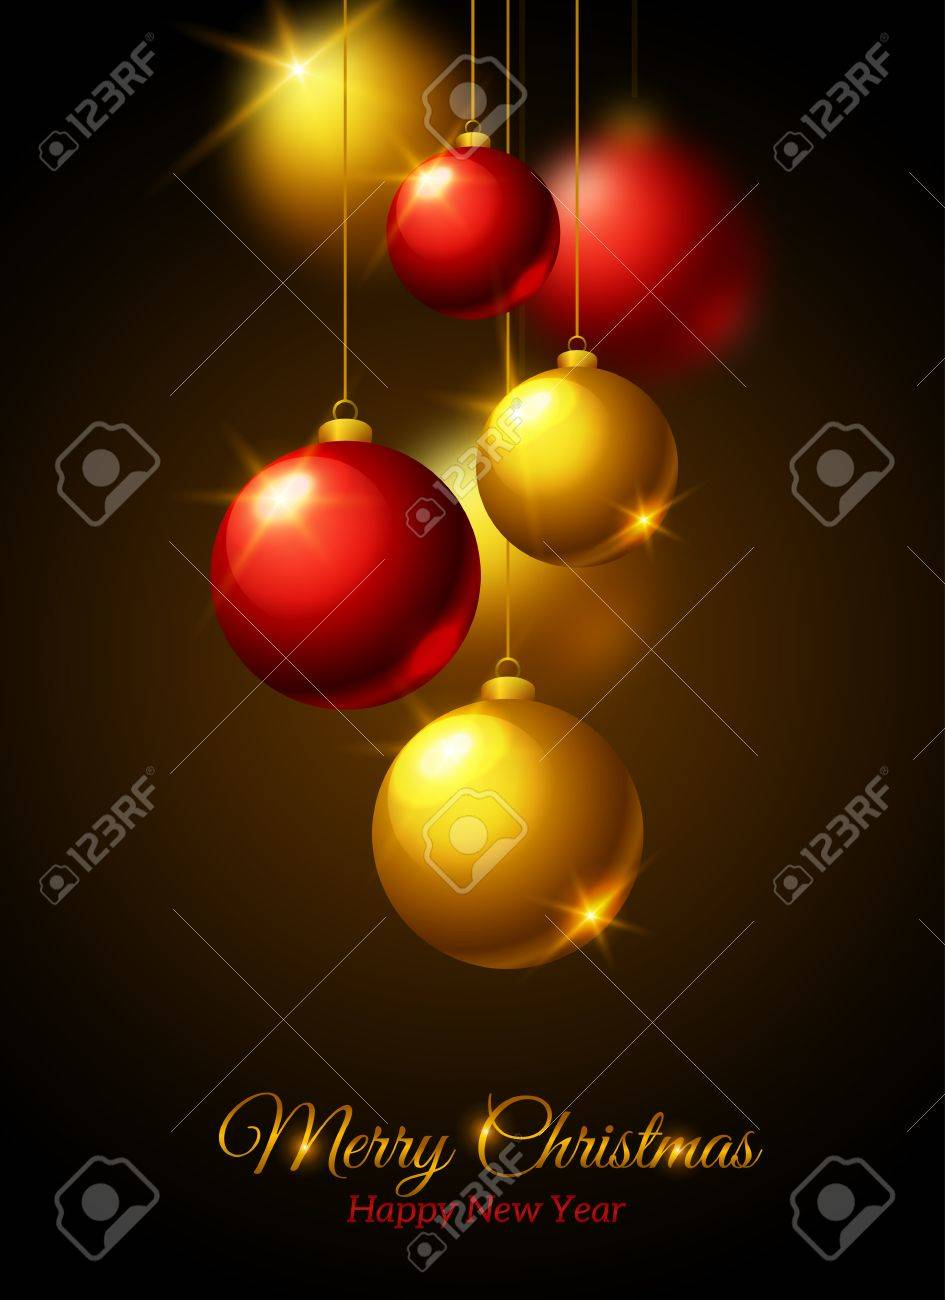 Merry Christmas And Happy New Year Greeting Card Gold And Red